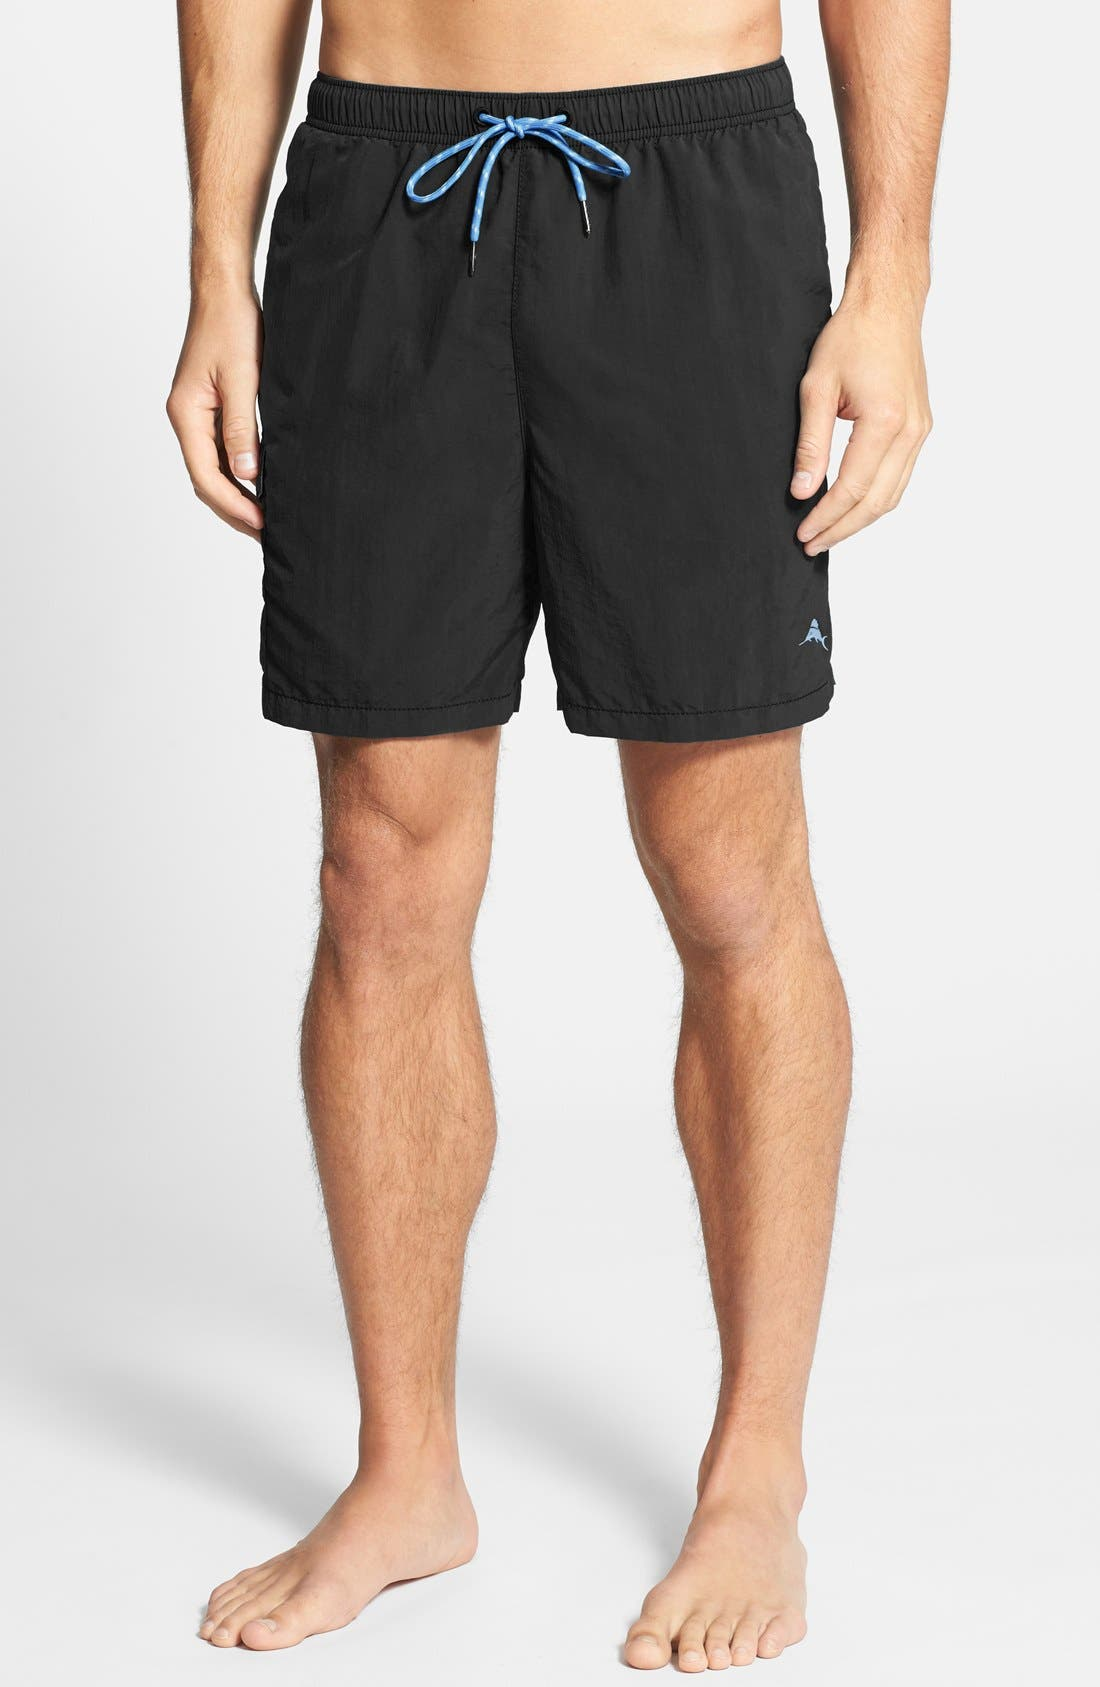 NAPLES HAPPY GO CARGO SWIM TRUNKS